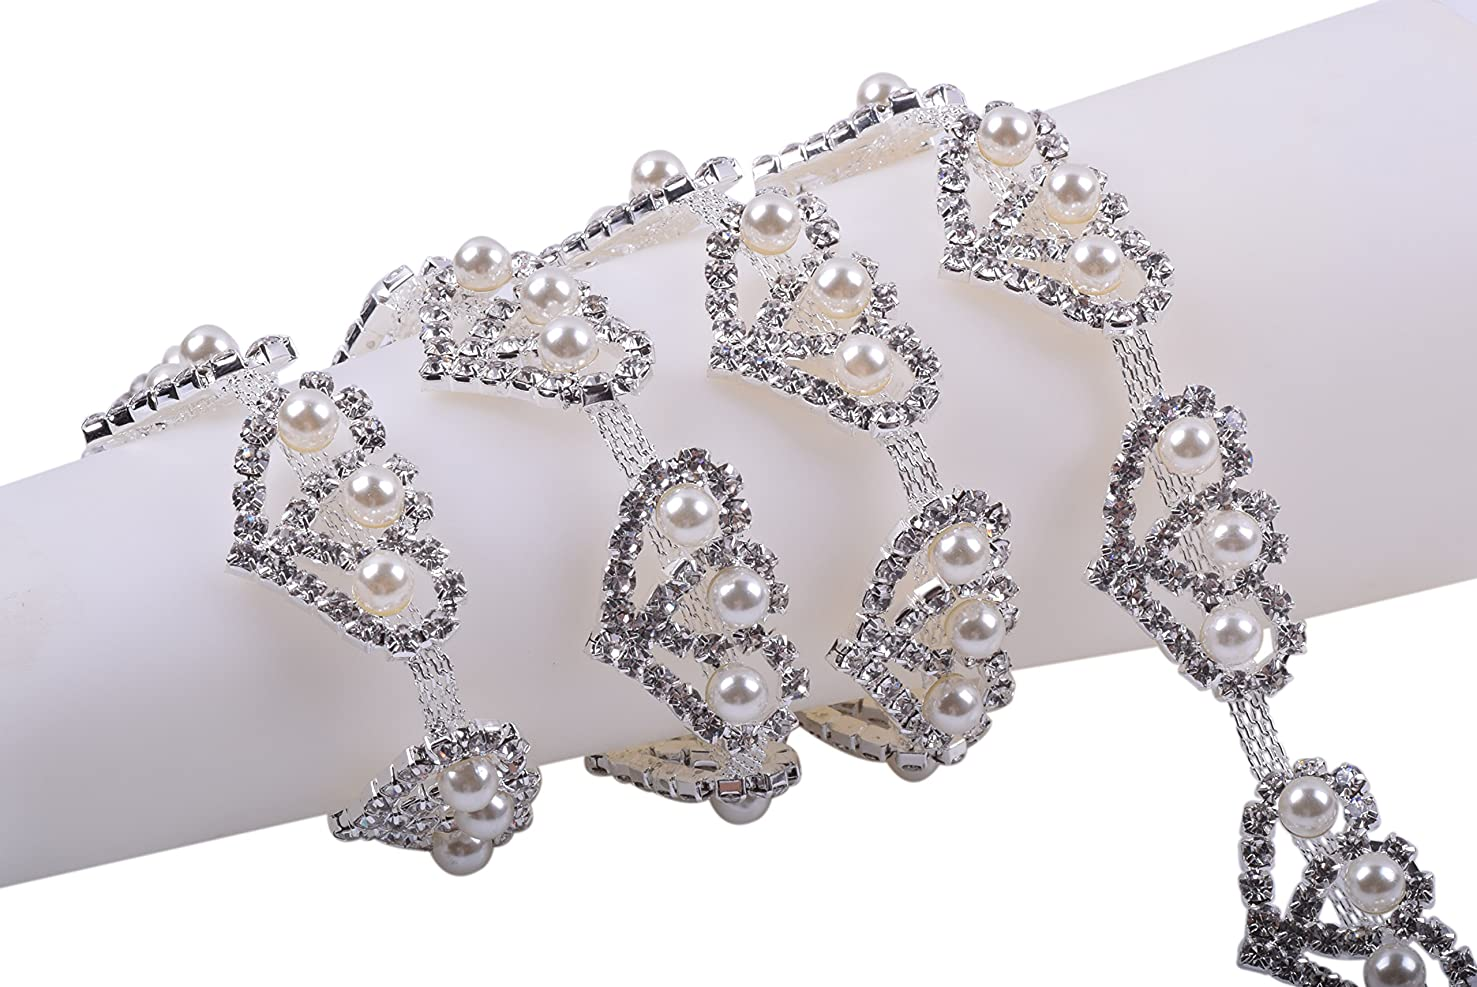 KAOYOO 1 Yard Heart-Shaped Crystal Rhinestone Chain Include Three Ivory Pearl for Sewing Trims Wedding Decoration or as a Present for Your Friends